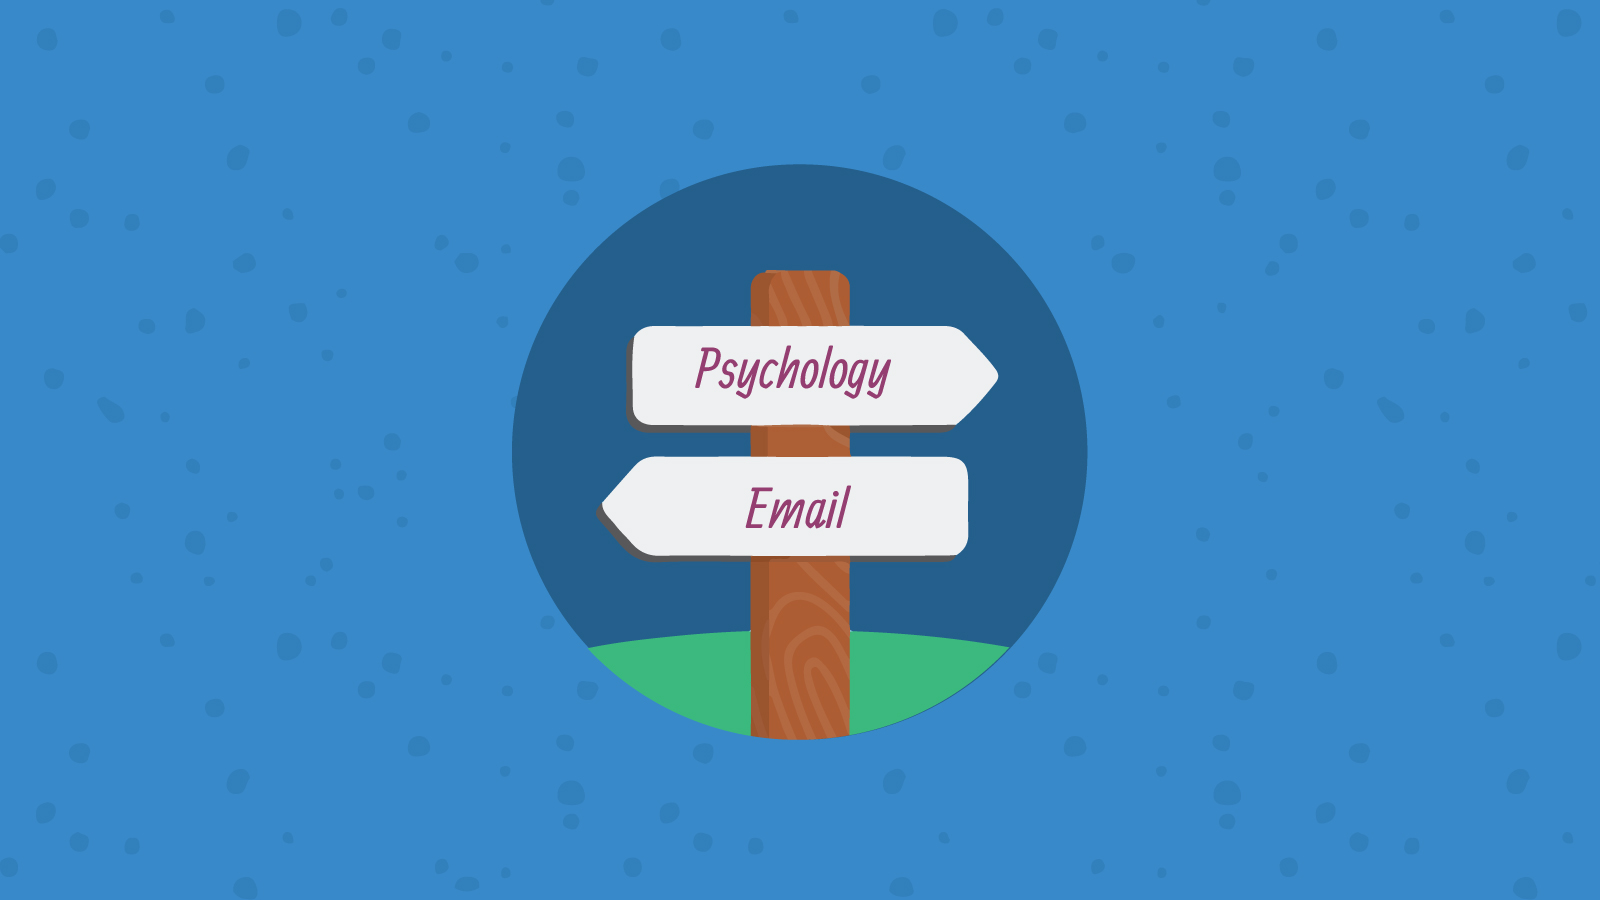 Psychology and Email